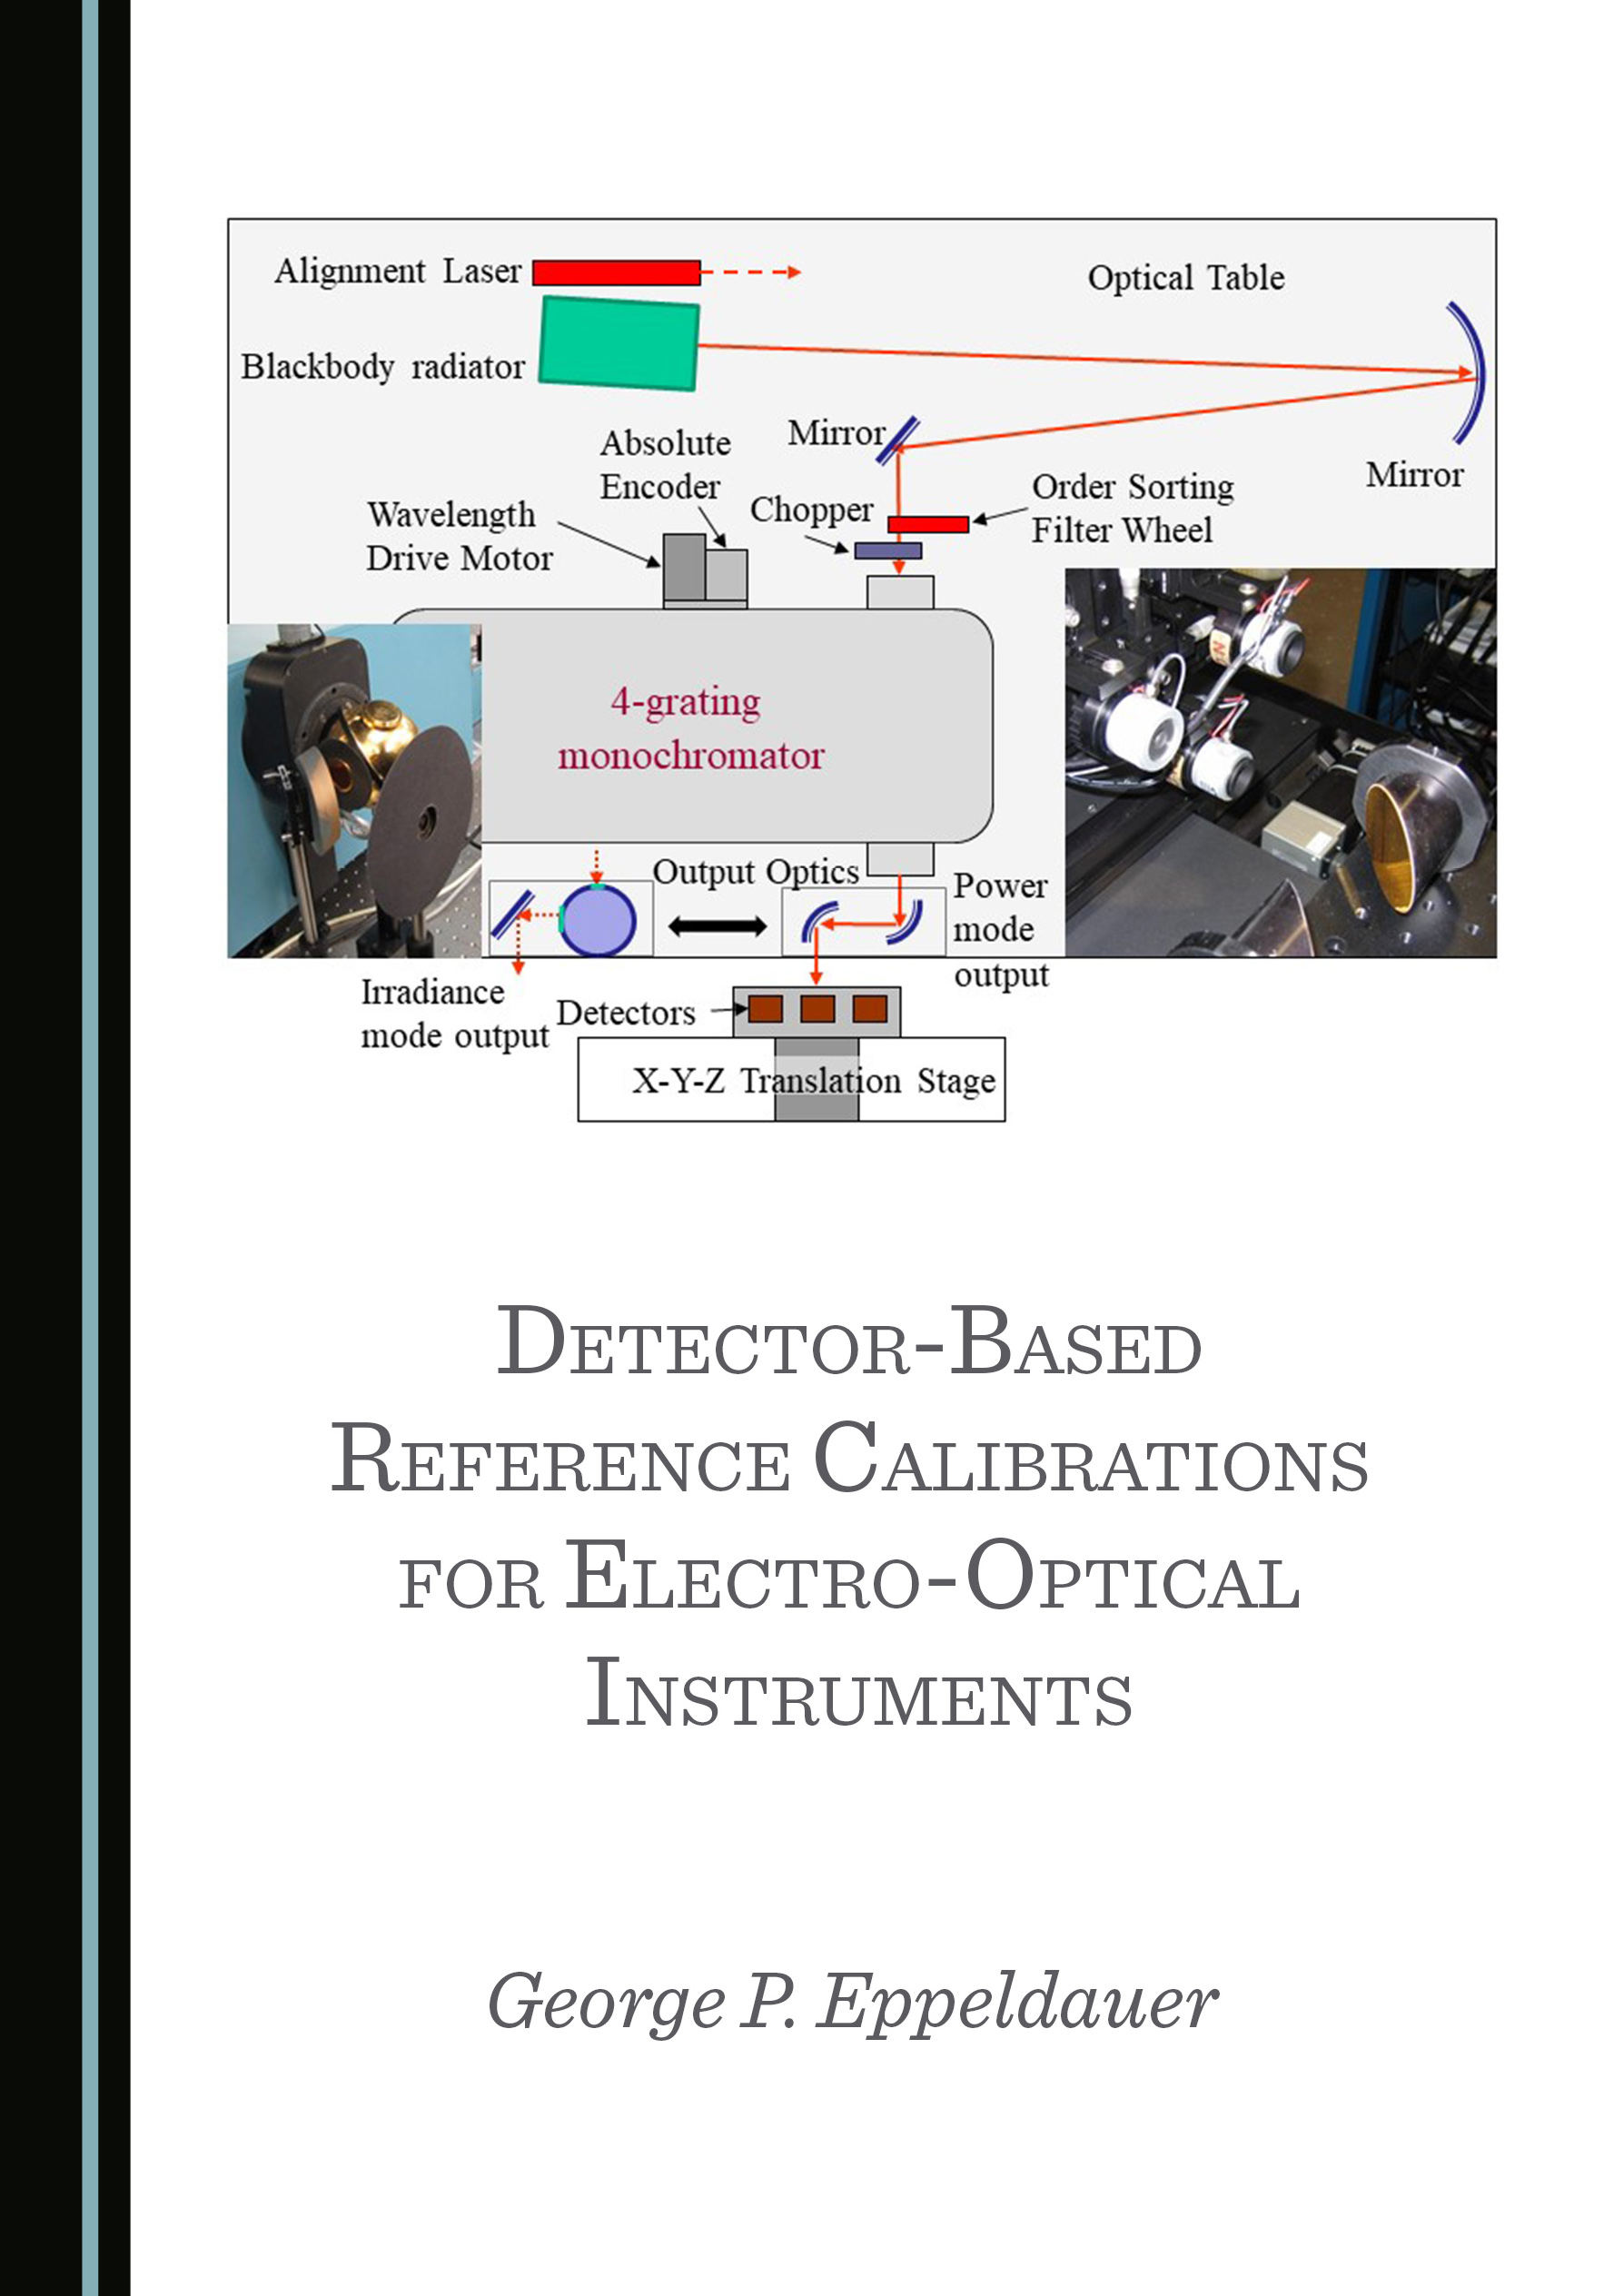 Detector-Based Reference Calibrations for Electro-Optical Instruments